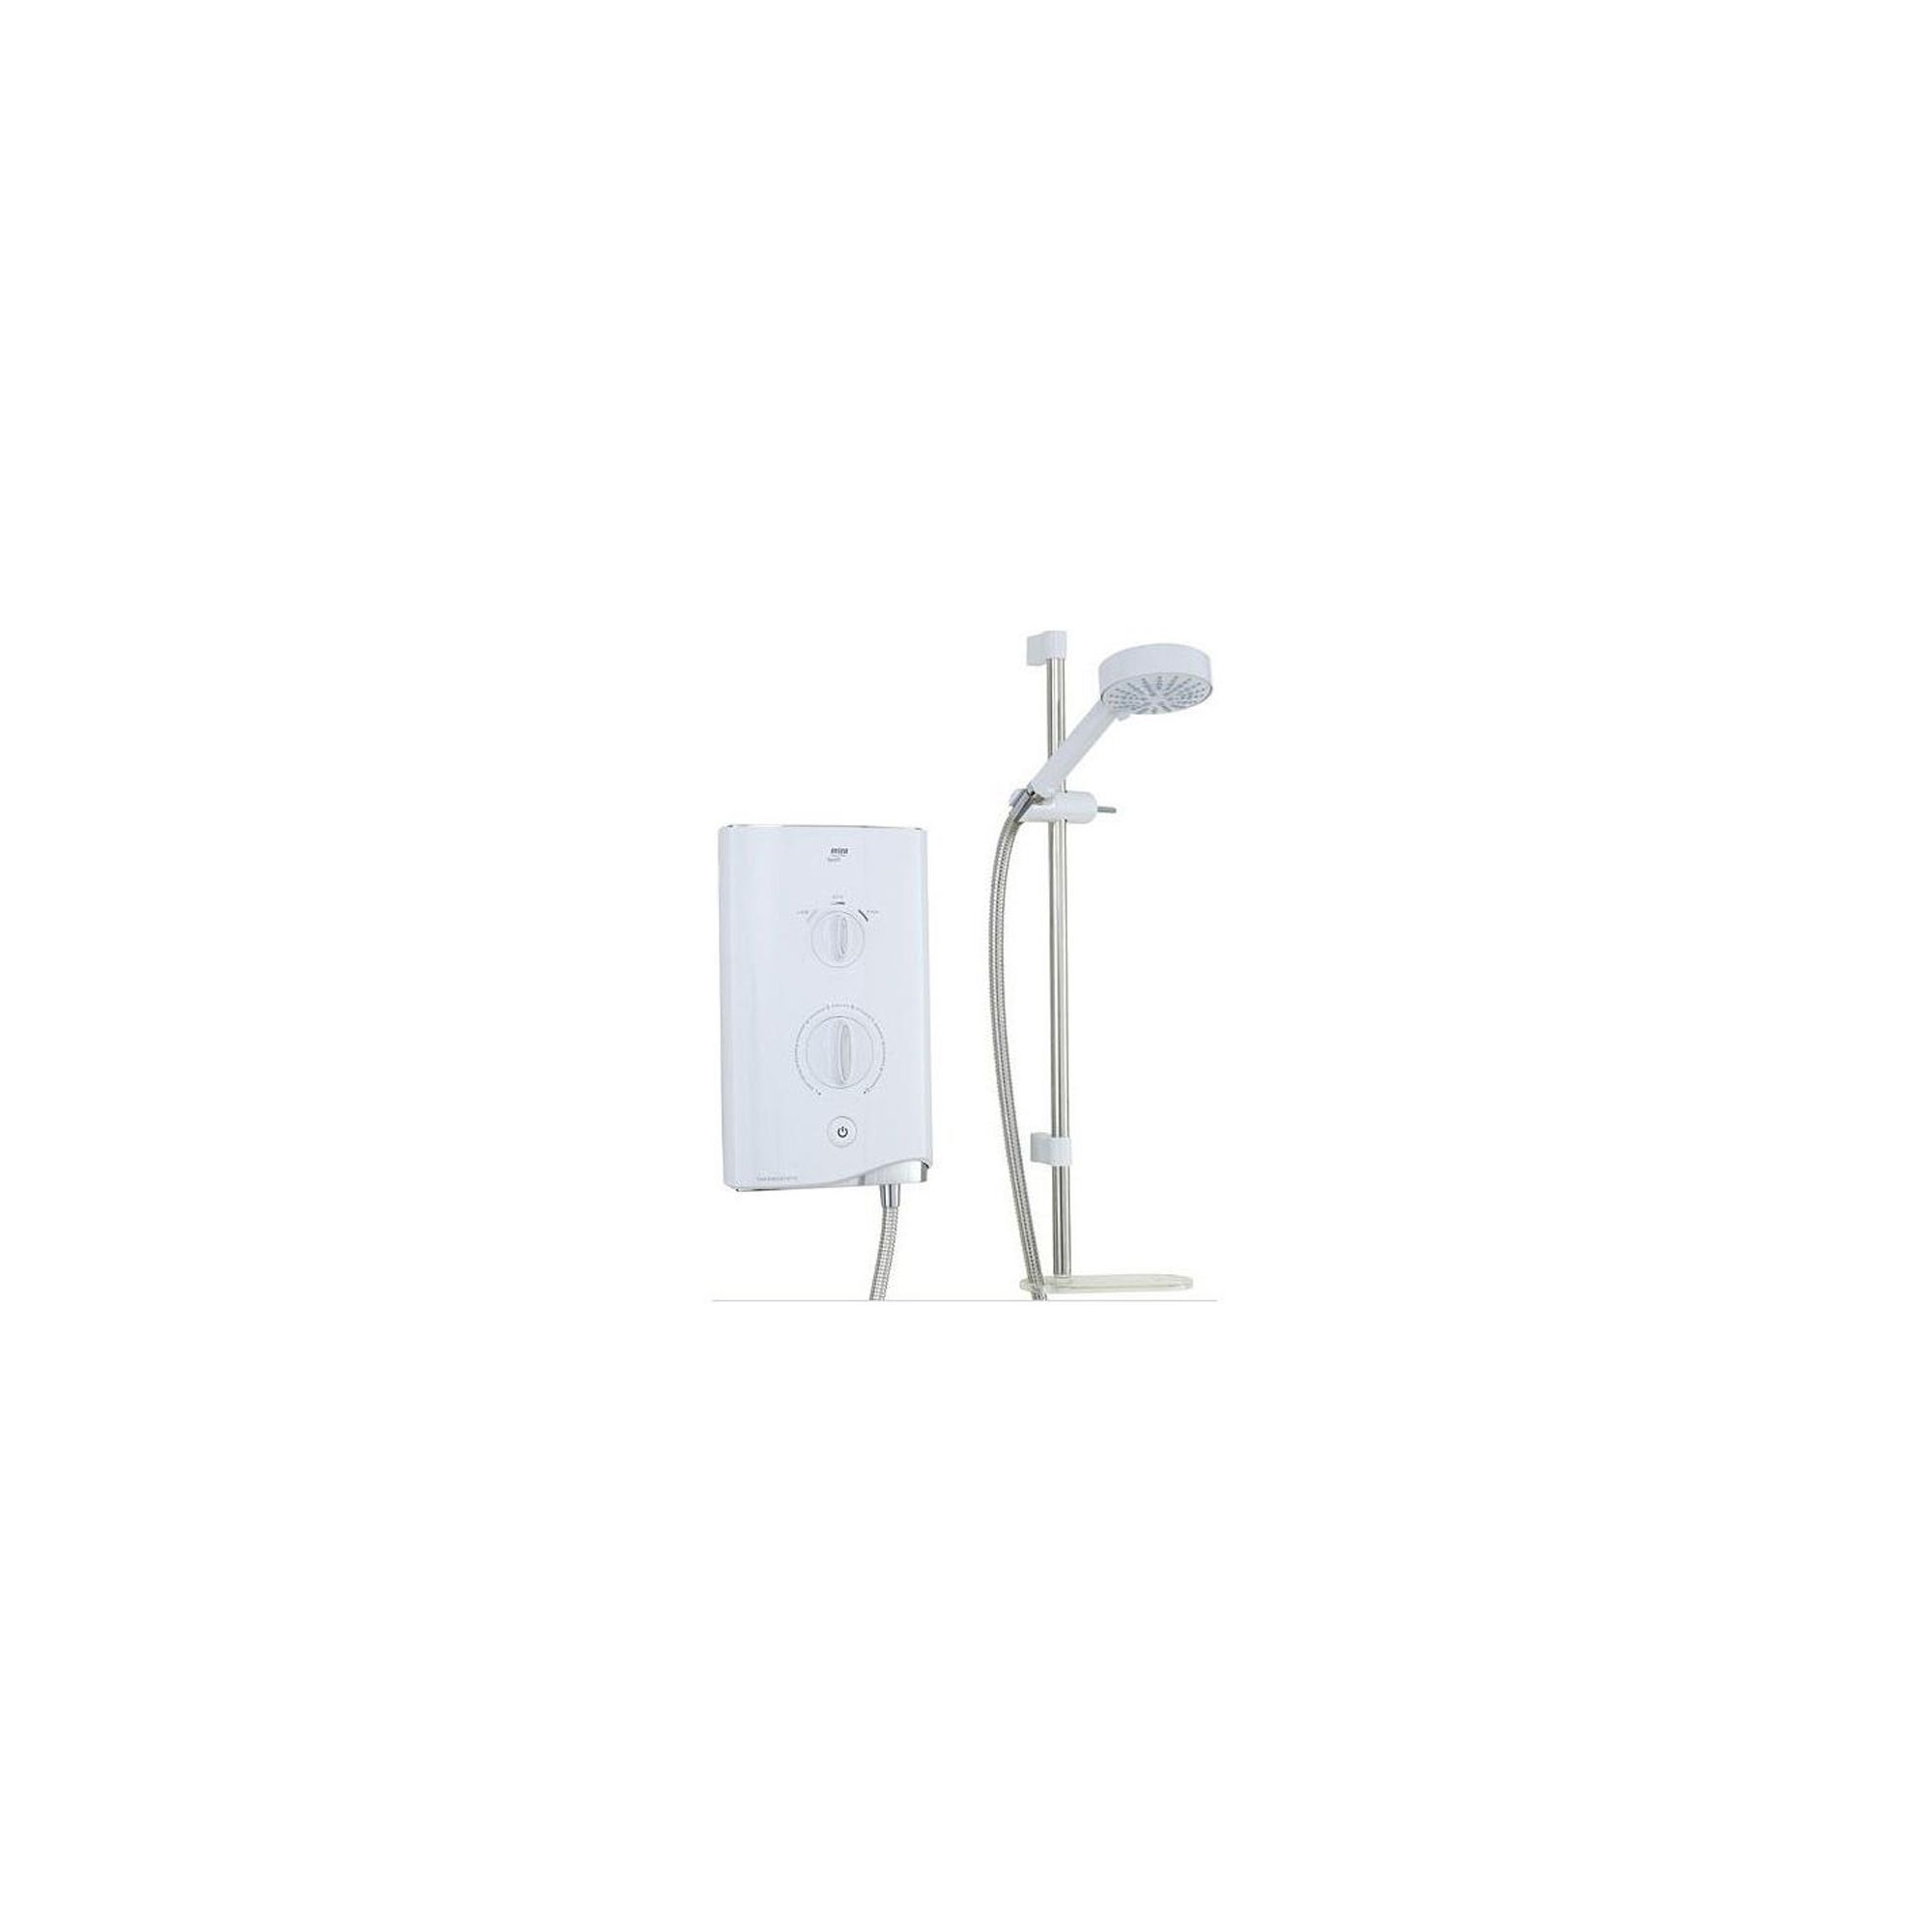 Mira Sport 9.8 kW Thermostatic Electric Shower with 4 Spray Handshower, White/Chrome at Tesco Direct